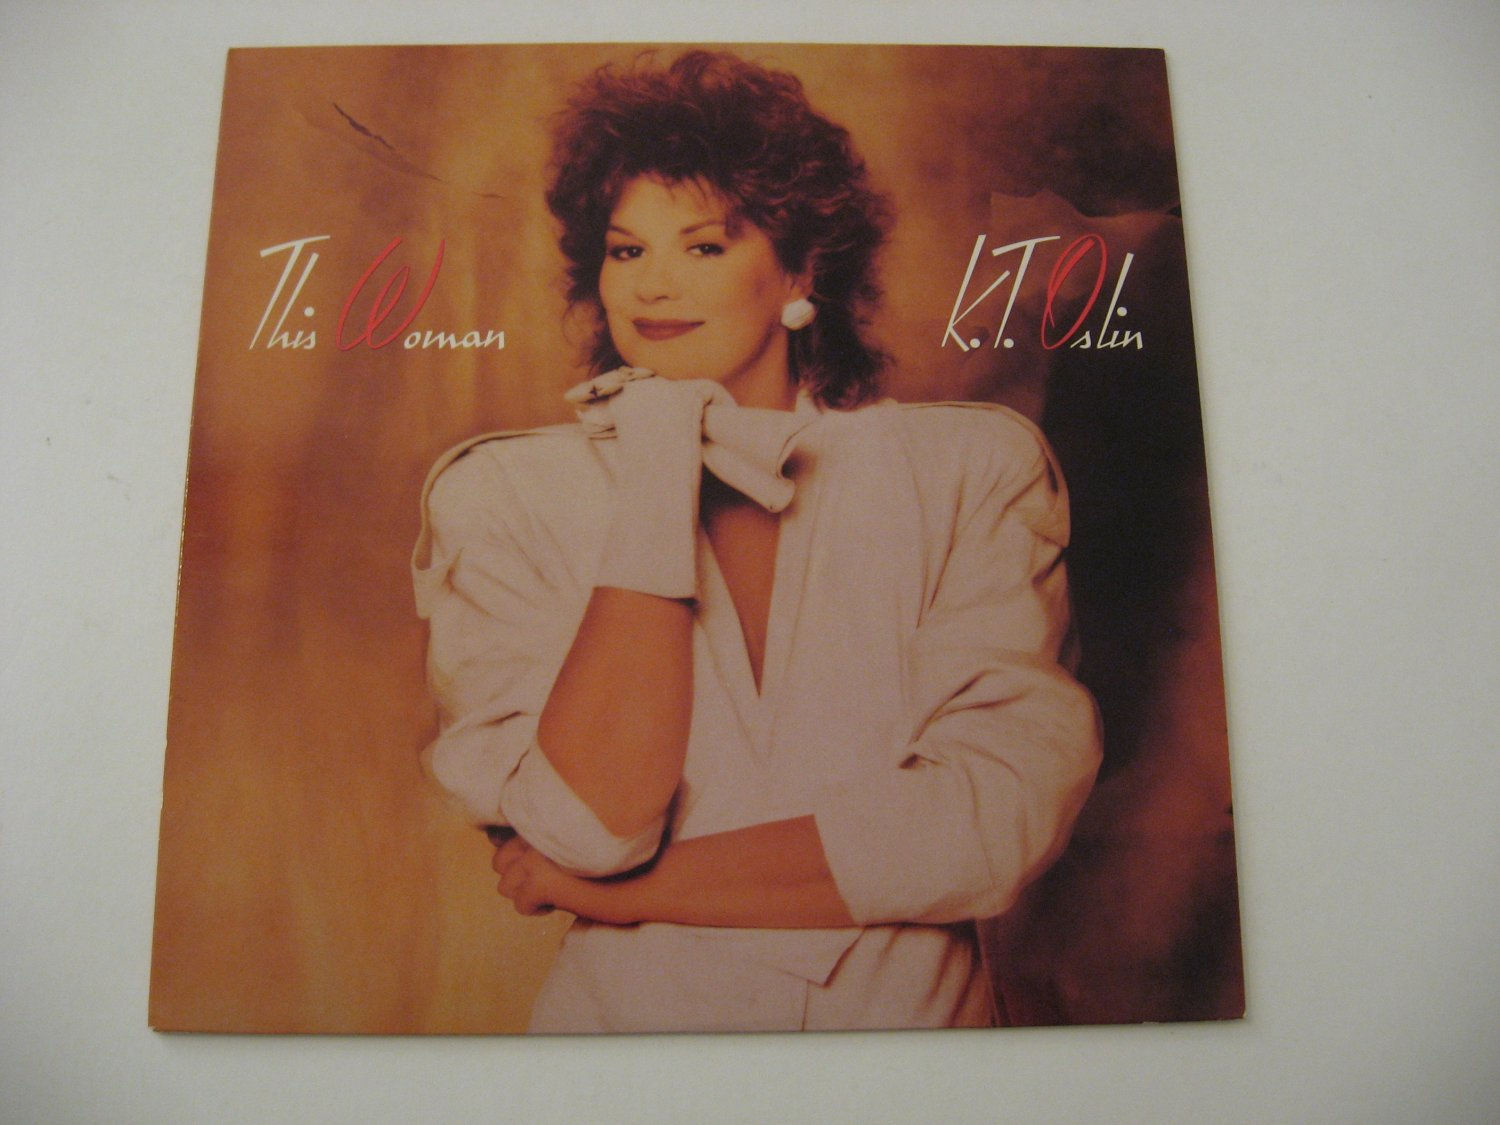 K.T. Oslin - This Woman - 1988  (Records)